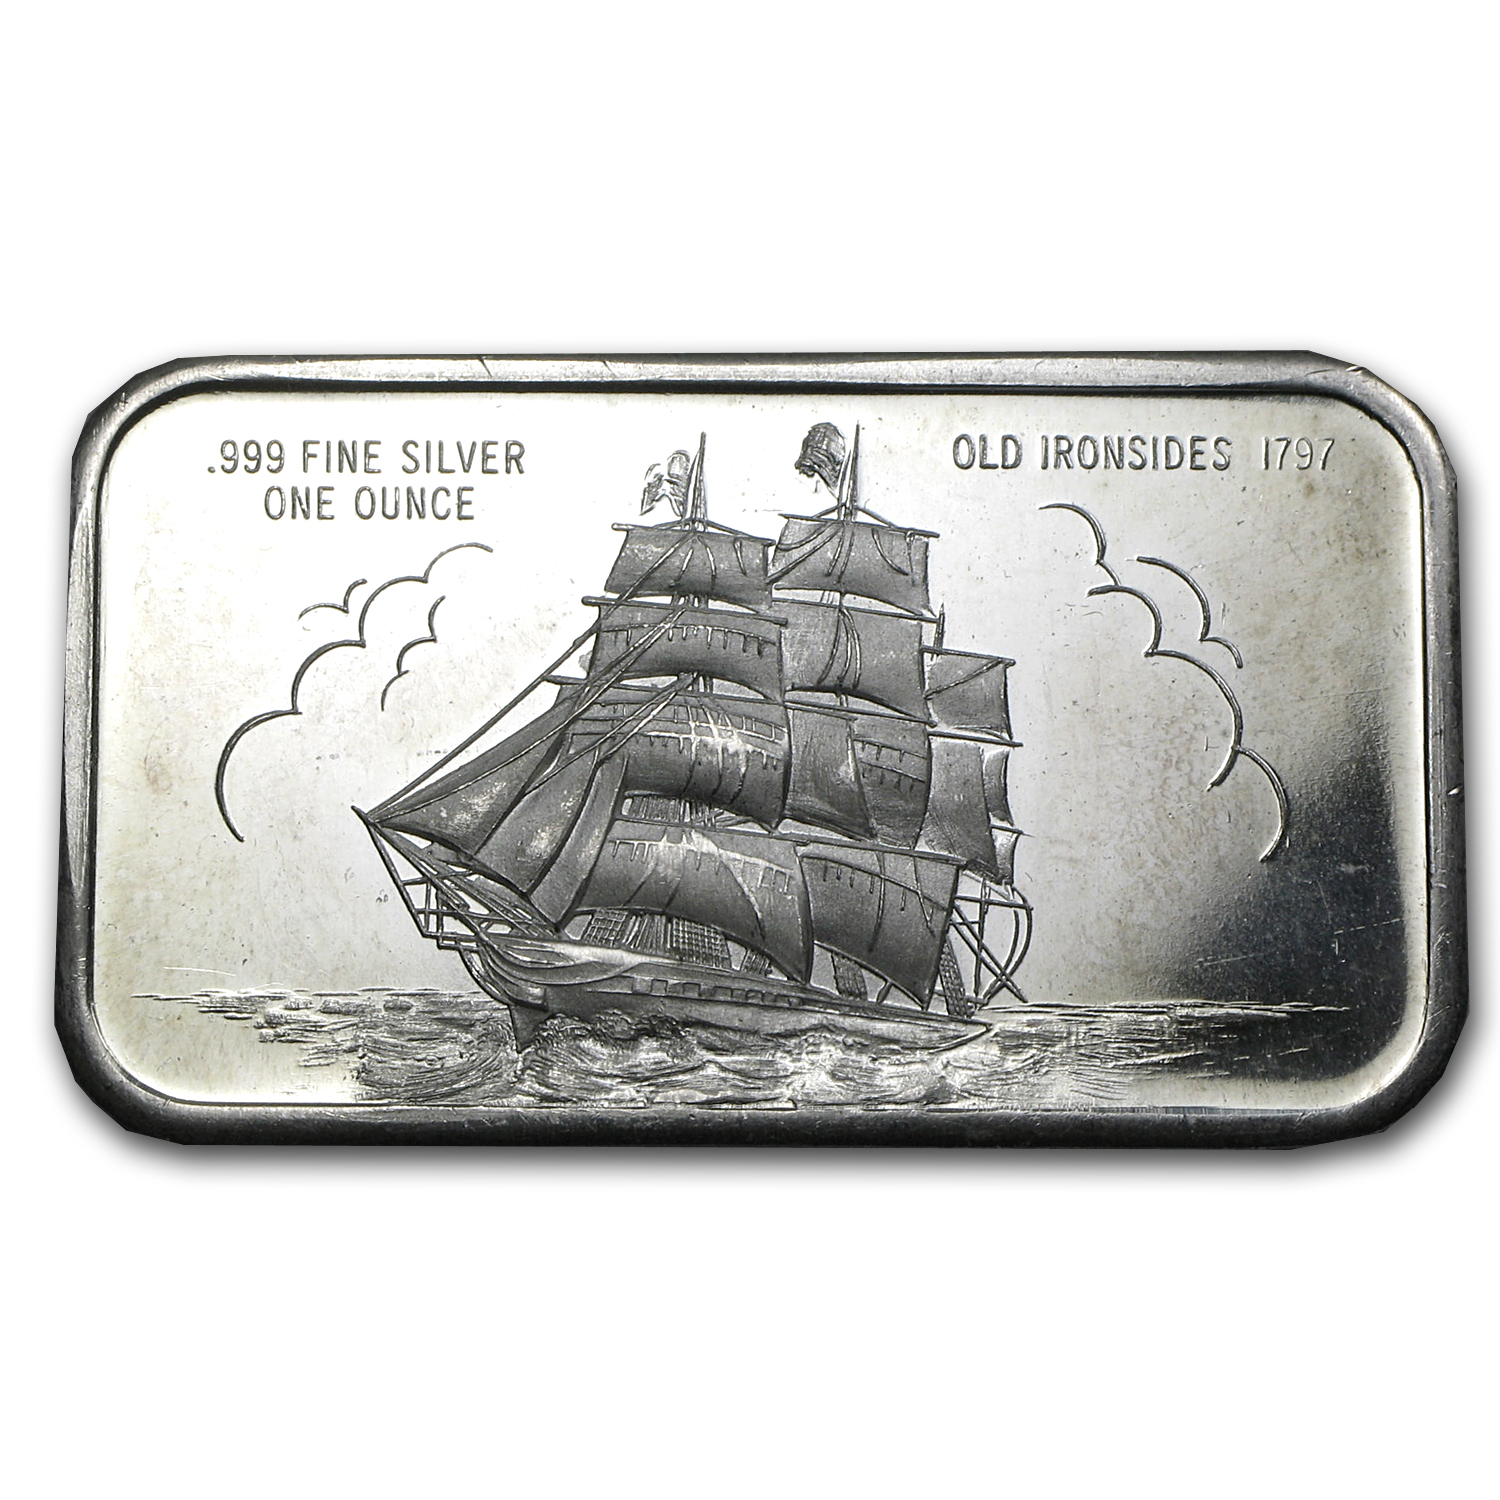 1 oz Silver Bars - Old Ironsides Ship